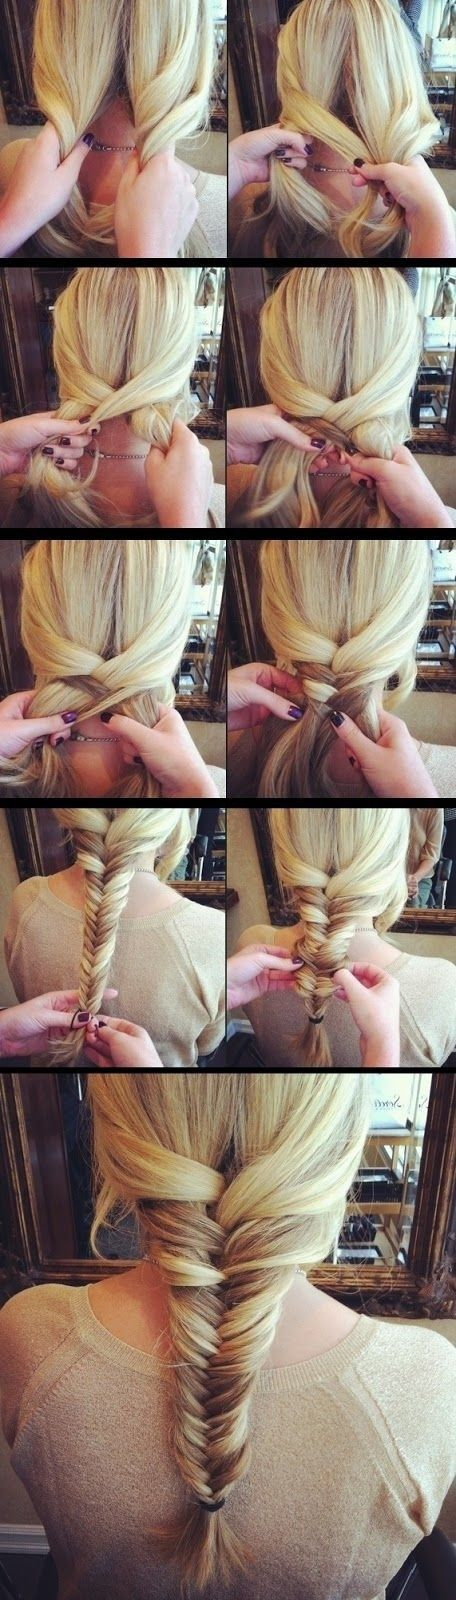 These are great photos of how to start a fishtail Braid!